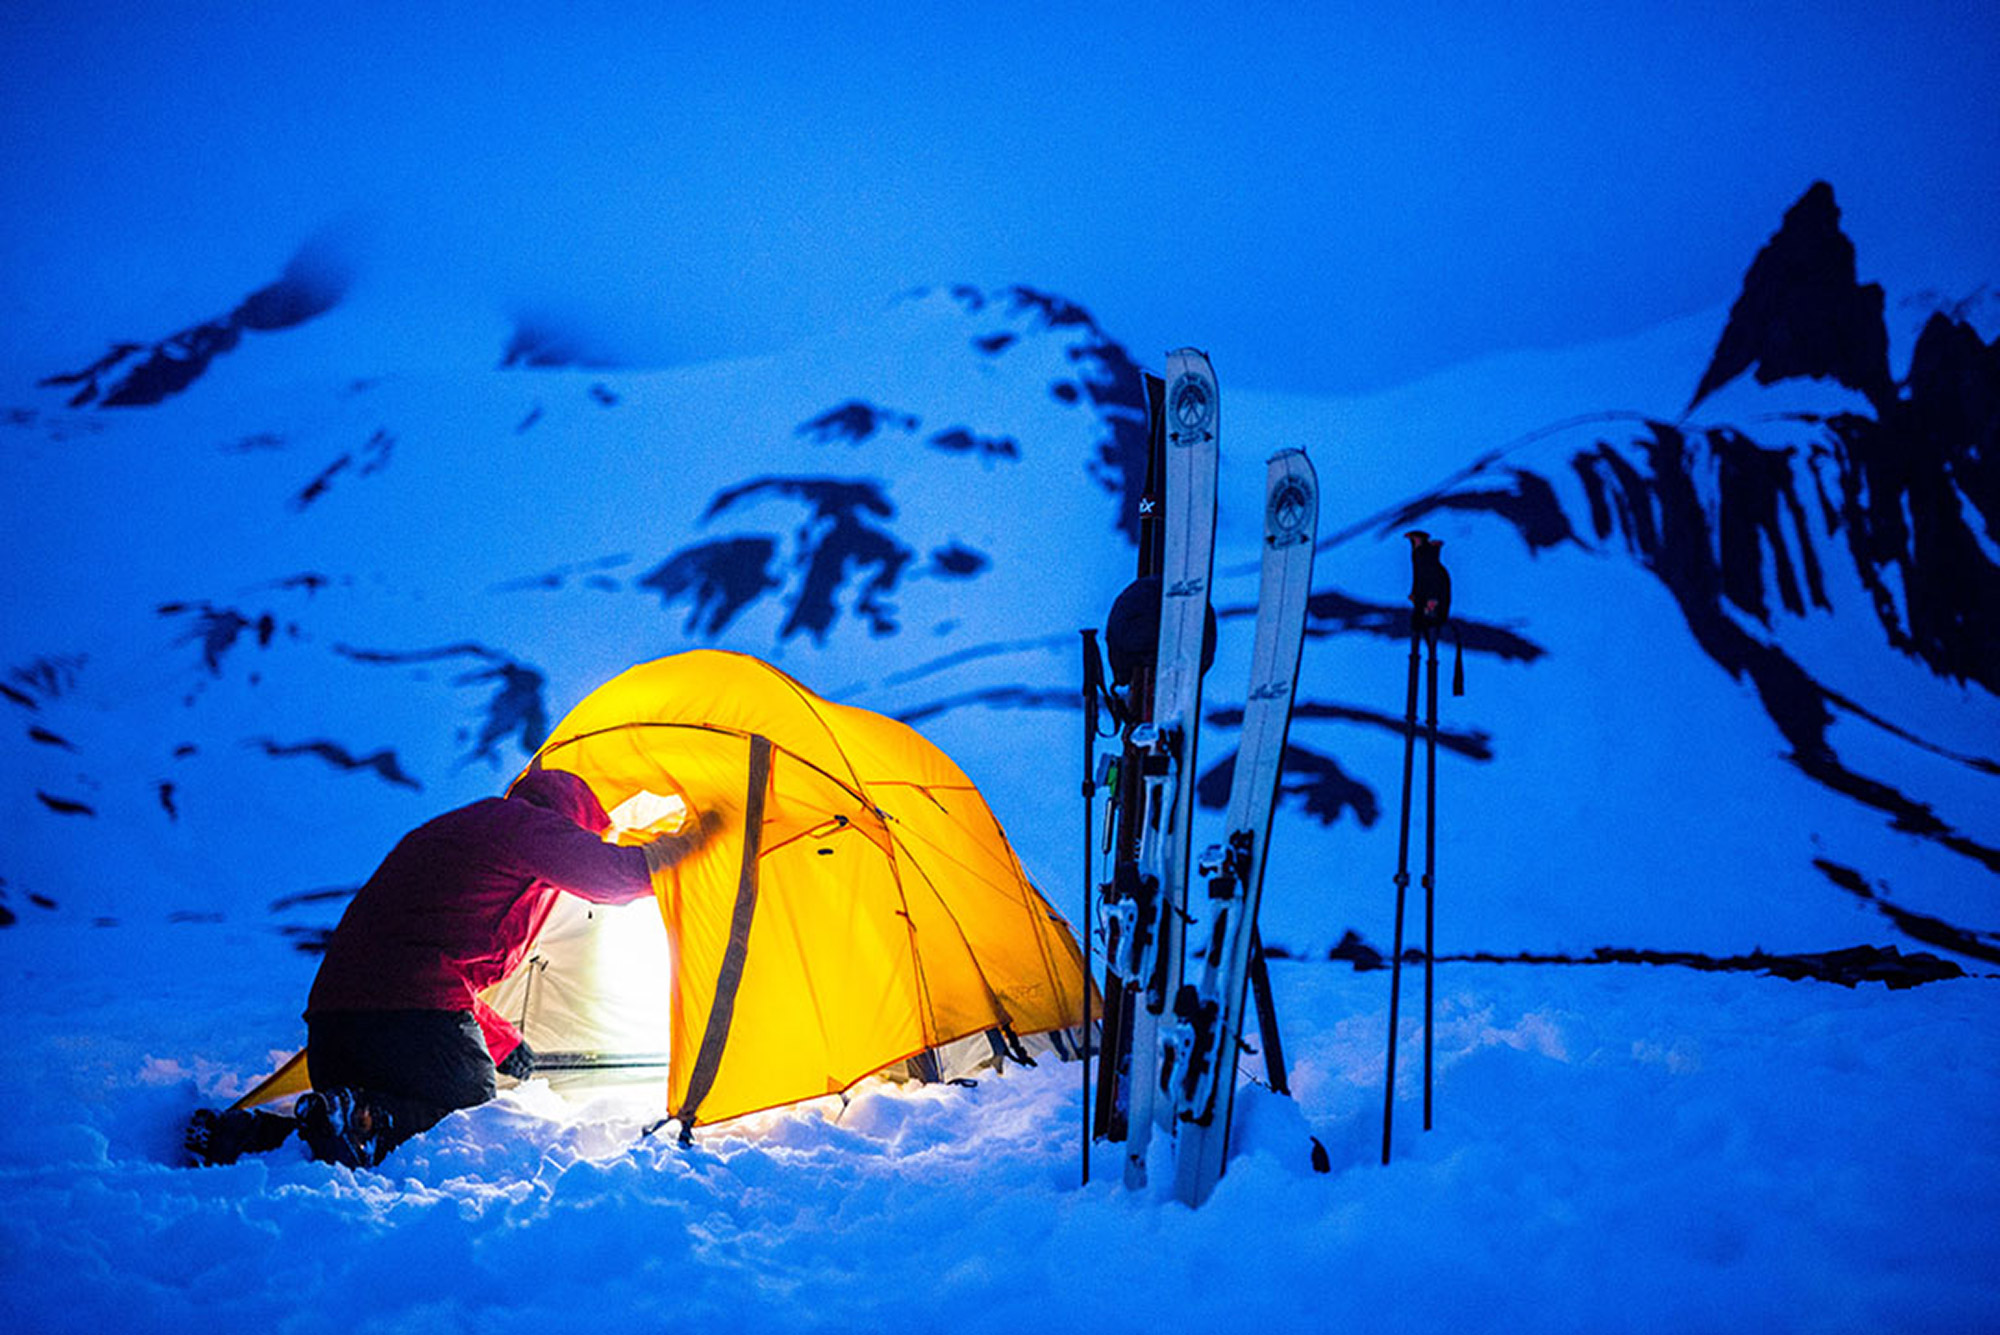 EMS-Winter-Camp-Mountain-7517